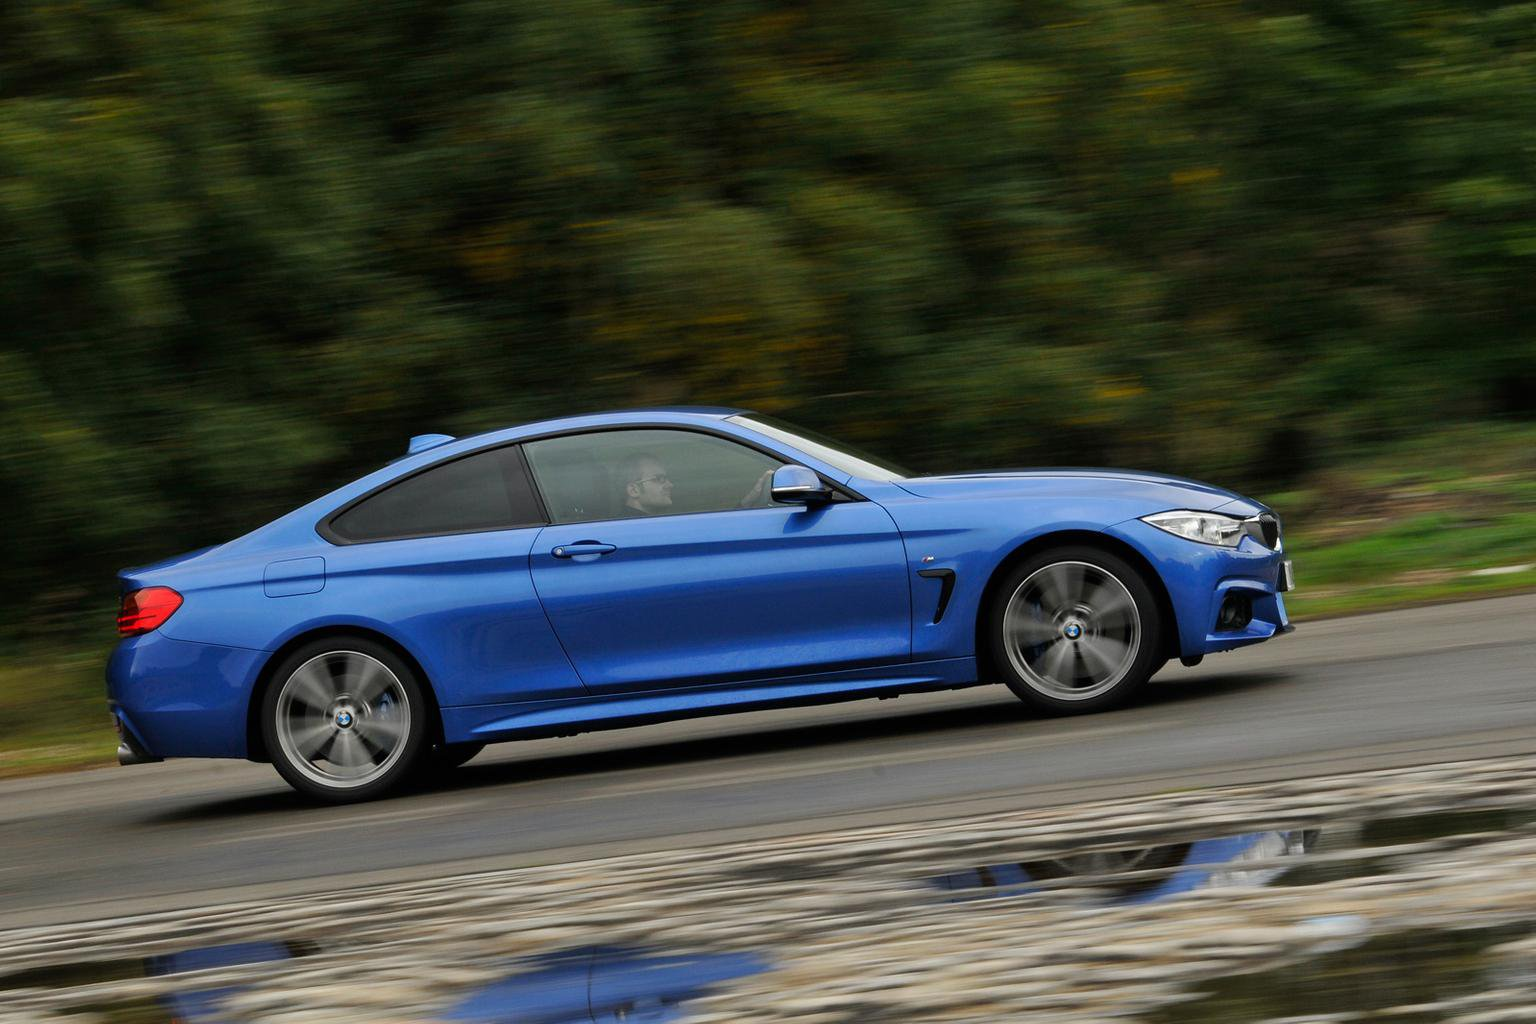 Discounts available on new BMW 4 Series and Citroen Grand C4 Picasso